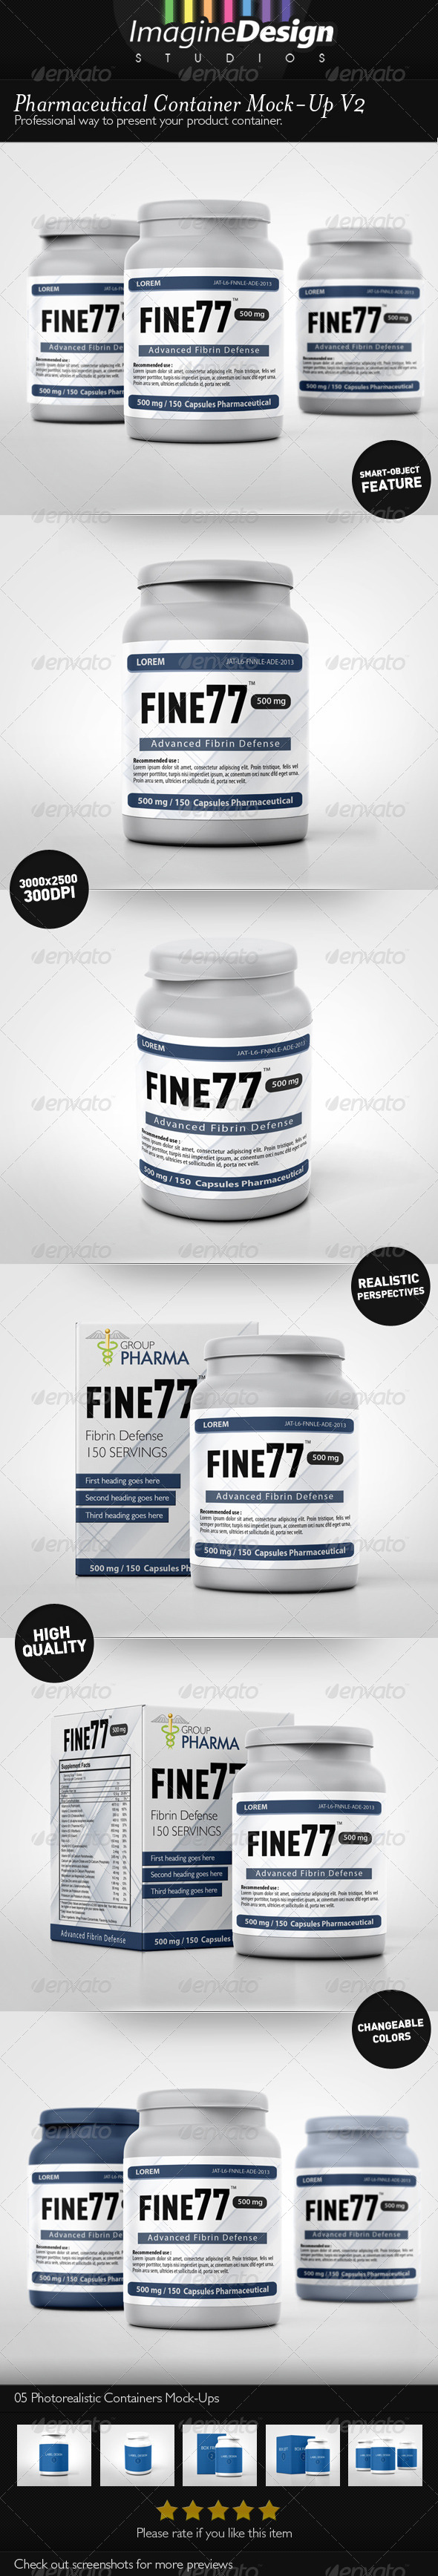 Pharmaceutical Container Mock-Up V2 - Miscellaneous Product Mock-Ups